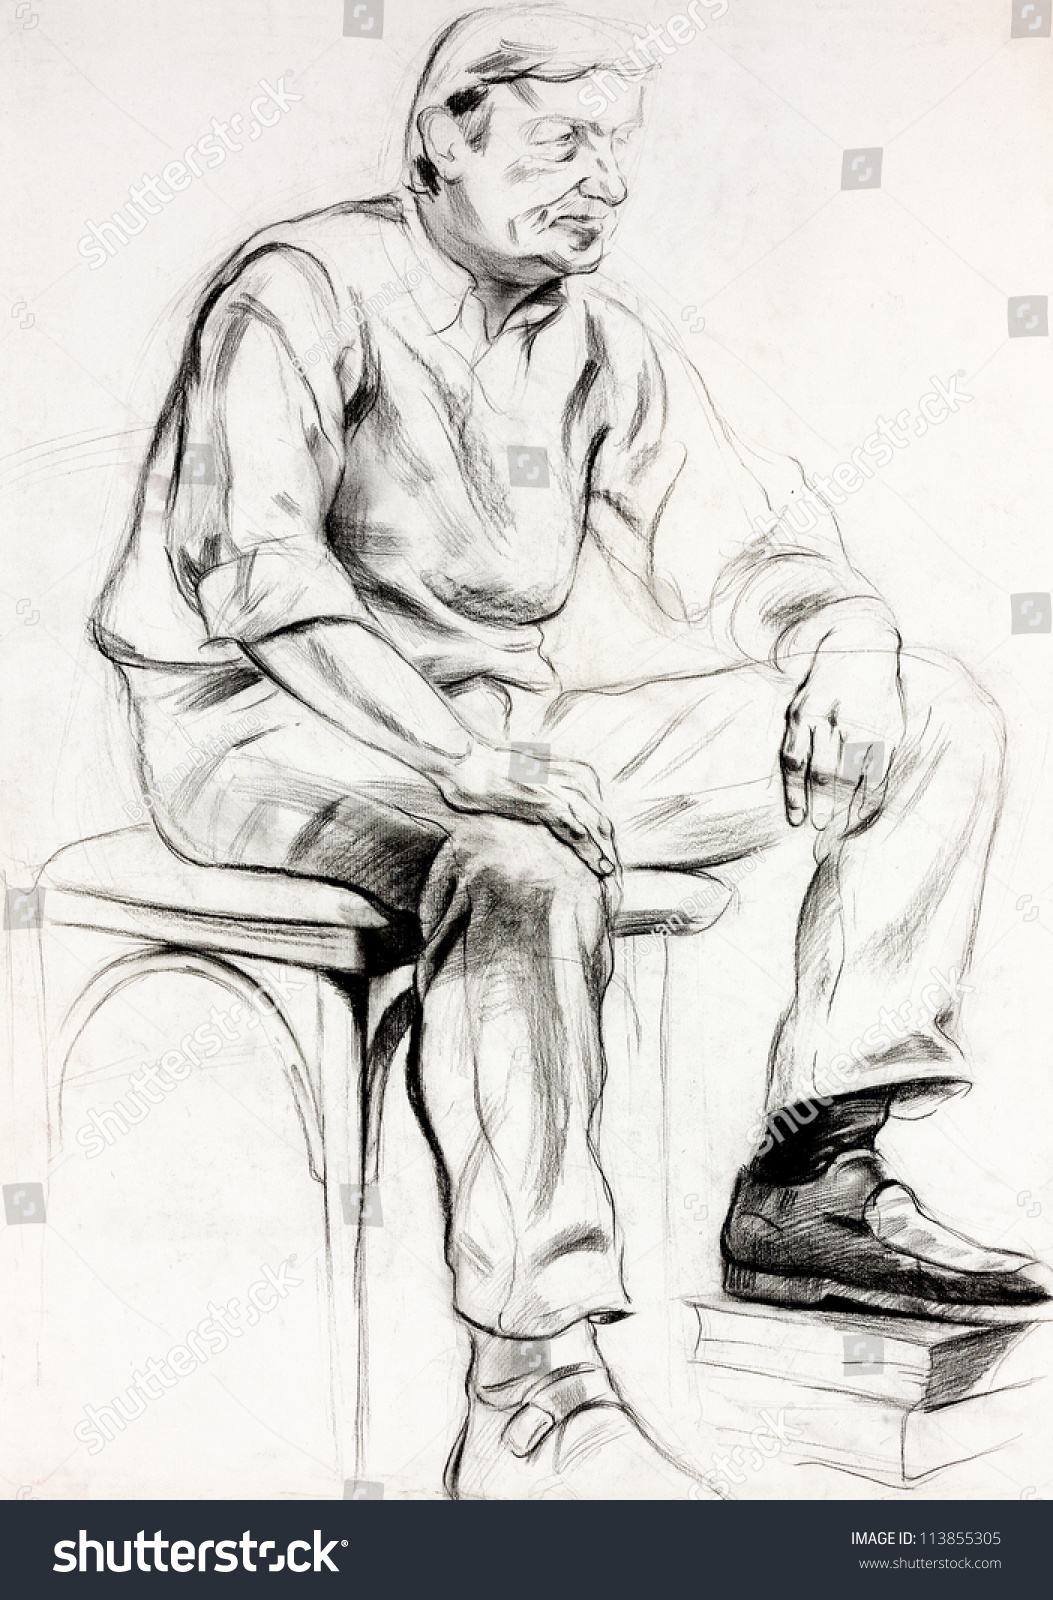 Man sitting in chair drawing - Original Pastel And Hand Drawn Painting Or Working Sketch Of A Man Sitting In A Chair